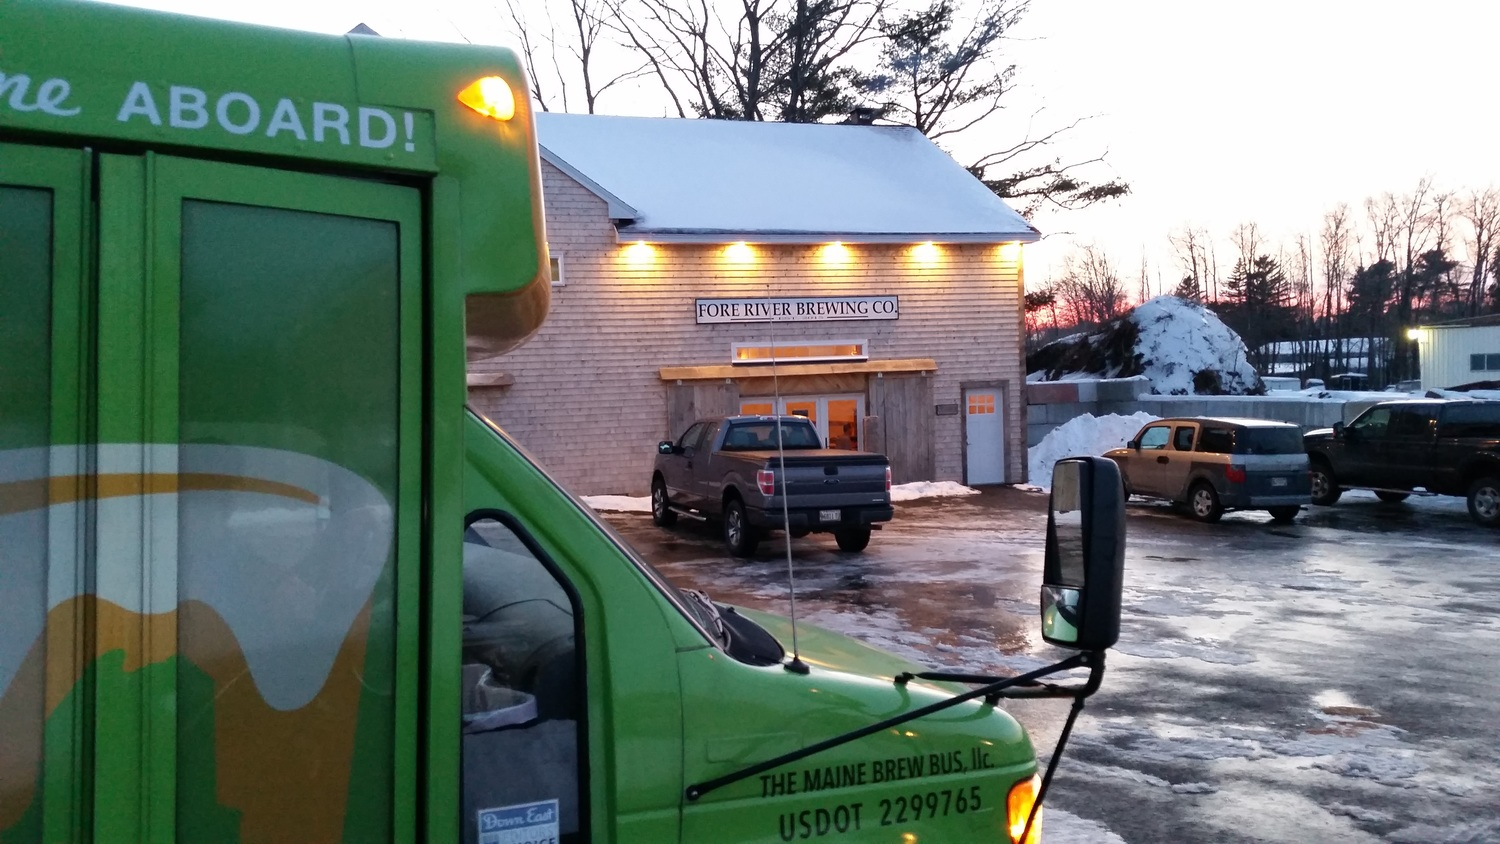 As the sun begins to set, the group has a second wind and it's off to Fore River Brewing Company which had opened in South Portland only 12 days prior.